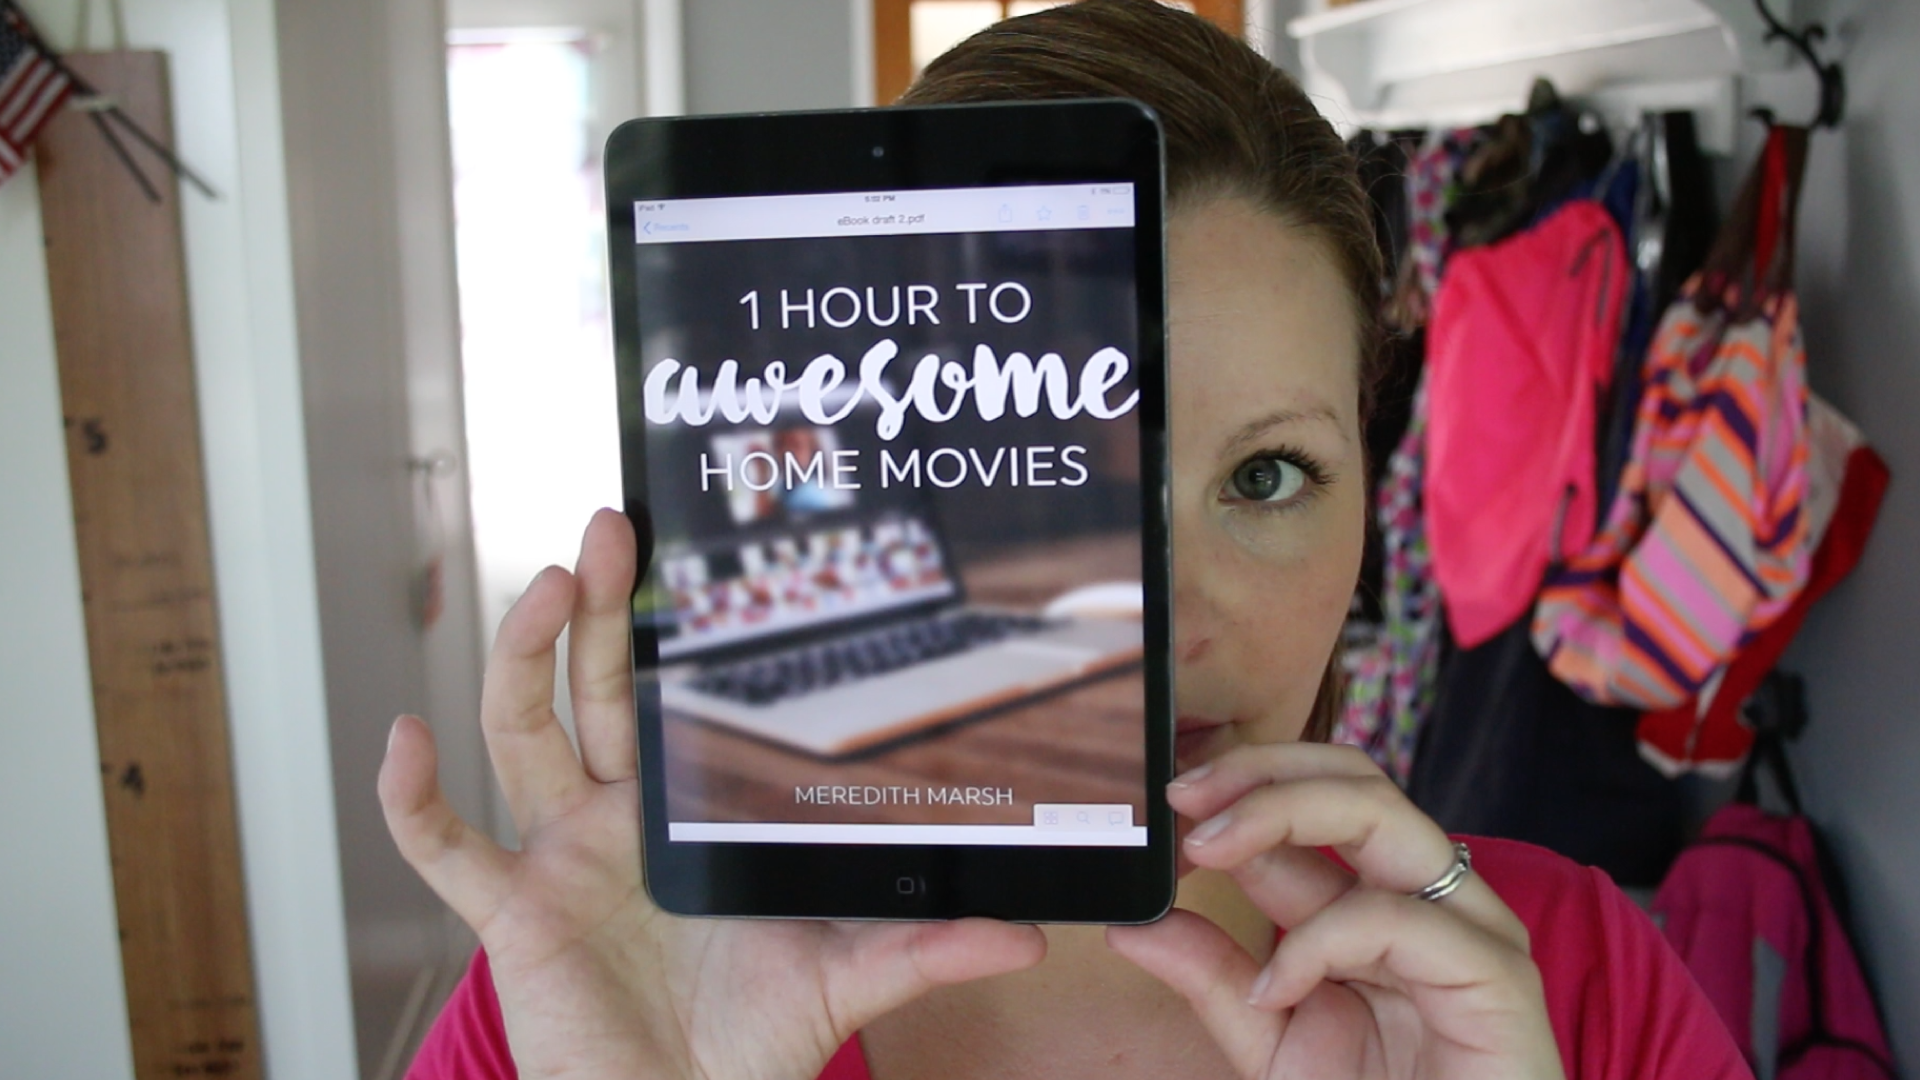 One Hour to Awesome Home Movies - VidProMom